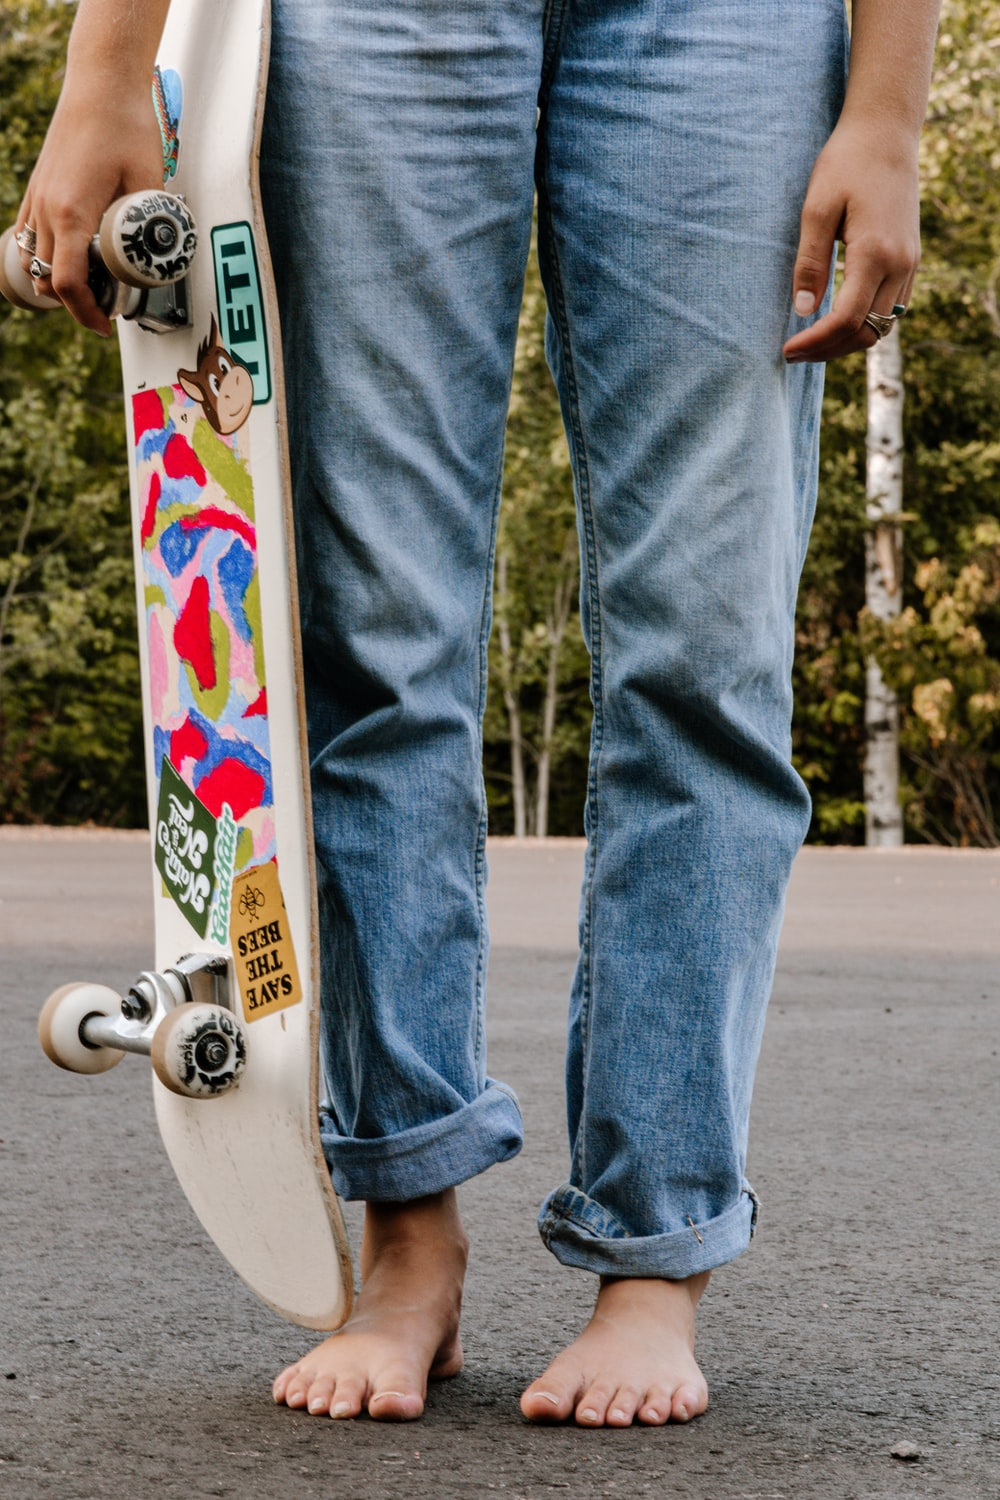 person in blue denim jeans riding skateboard during daytime